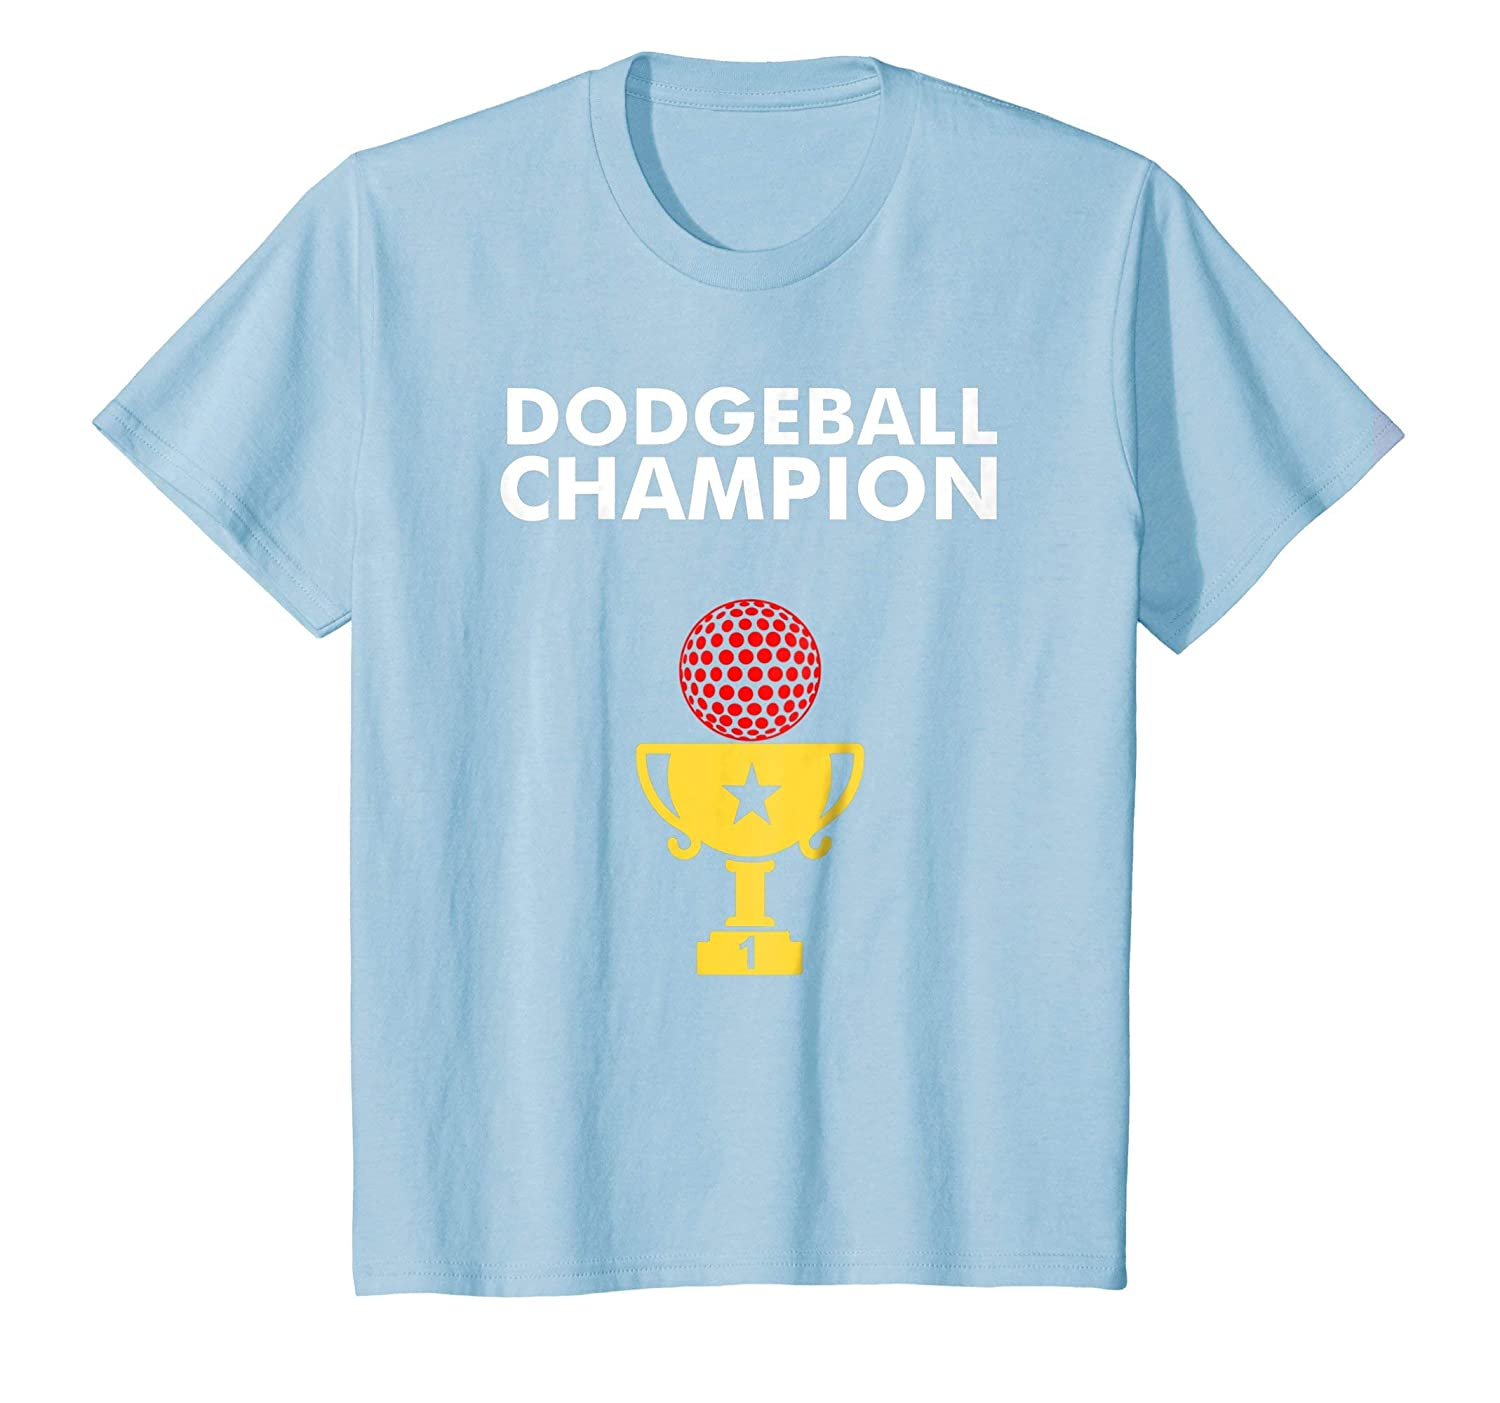 17fbed709776 Amazon.com: Kids Dodgeball Champion TShirt with Trophy 12 Baby Blue:  Clothing